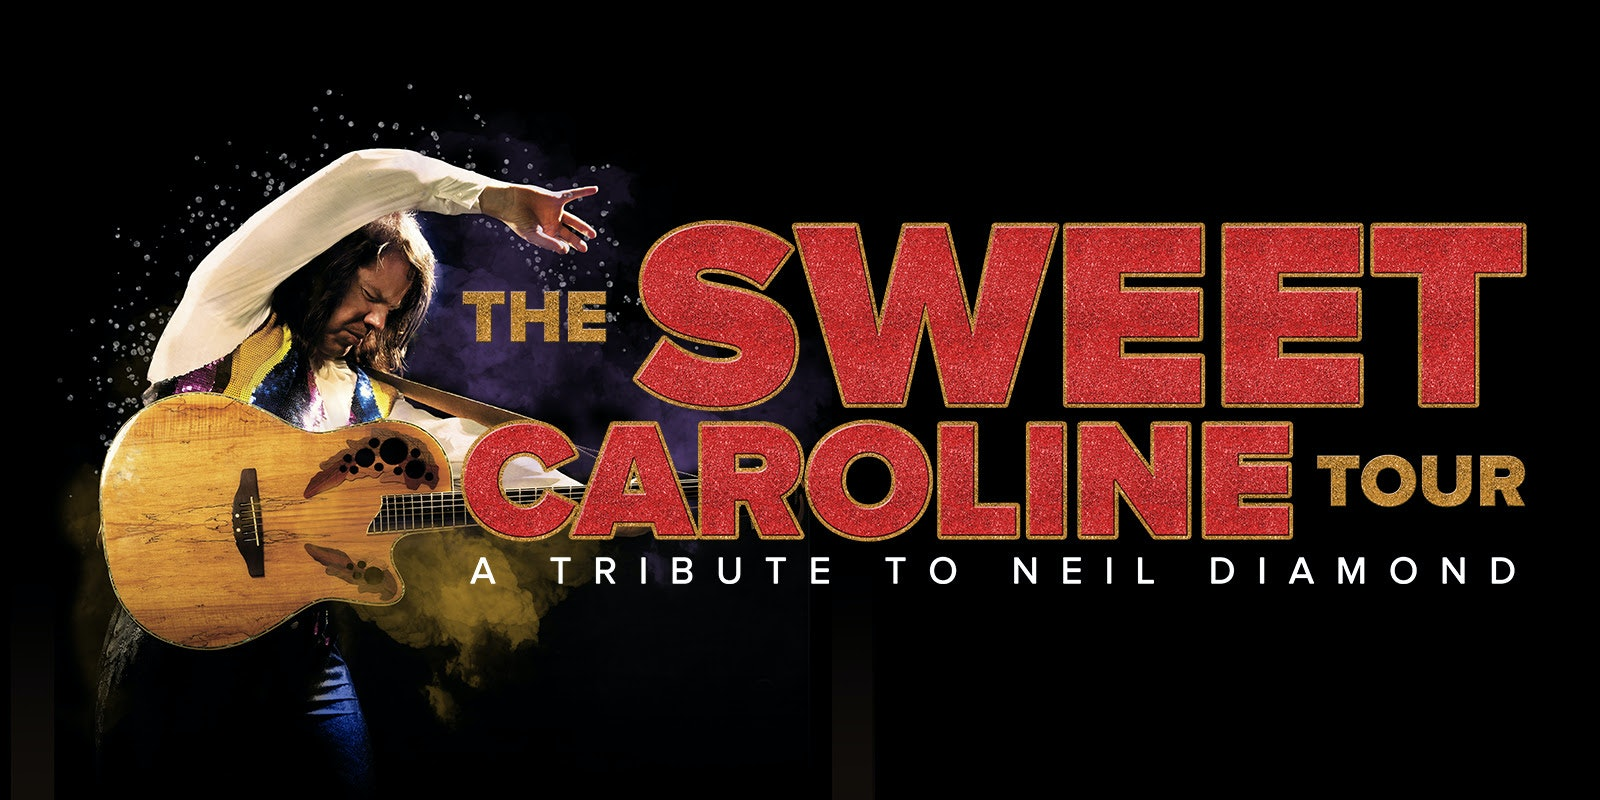 The Sweet Caroline Tour: A Tribute to Neil Diamond